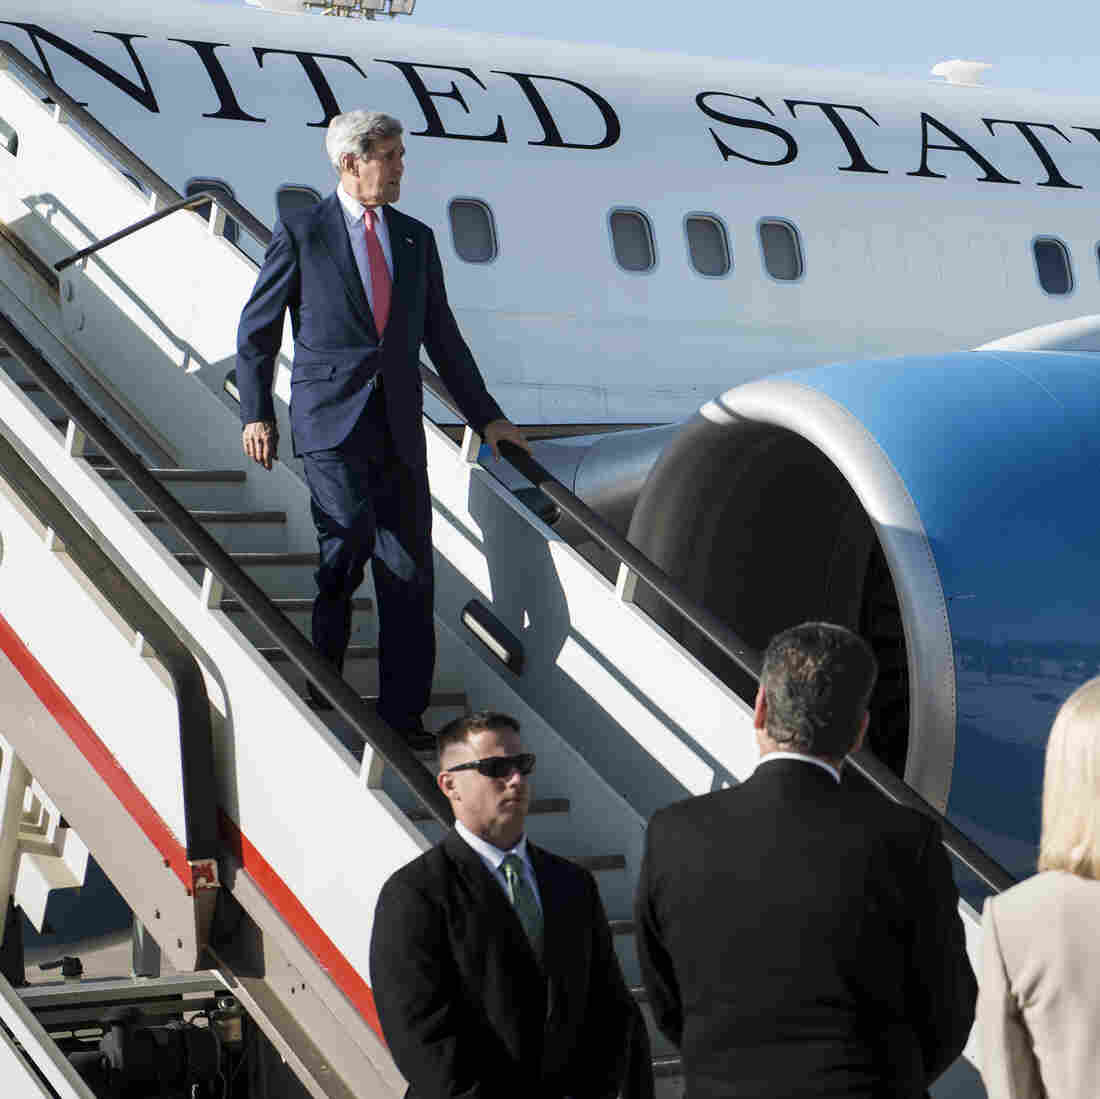 Kerry Seeks Iraq's Support On Move Against Islamic State